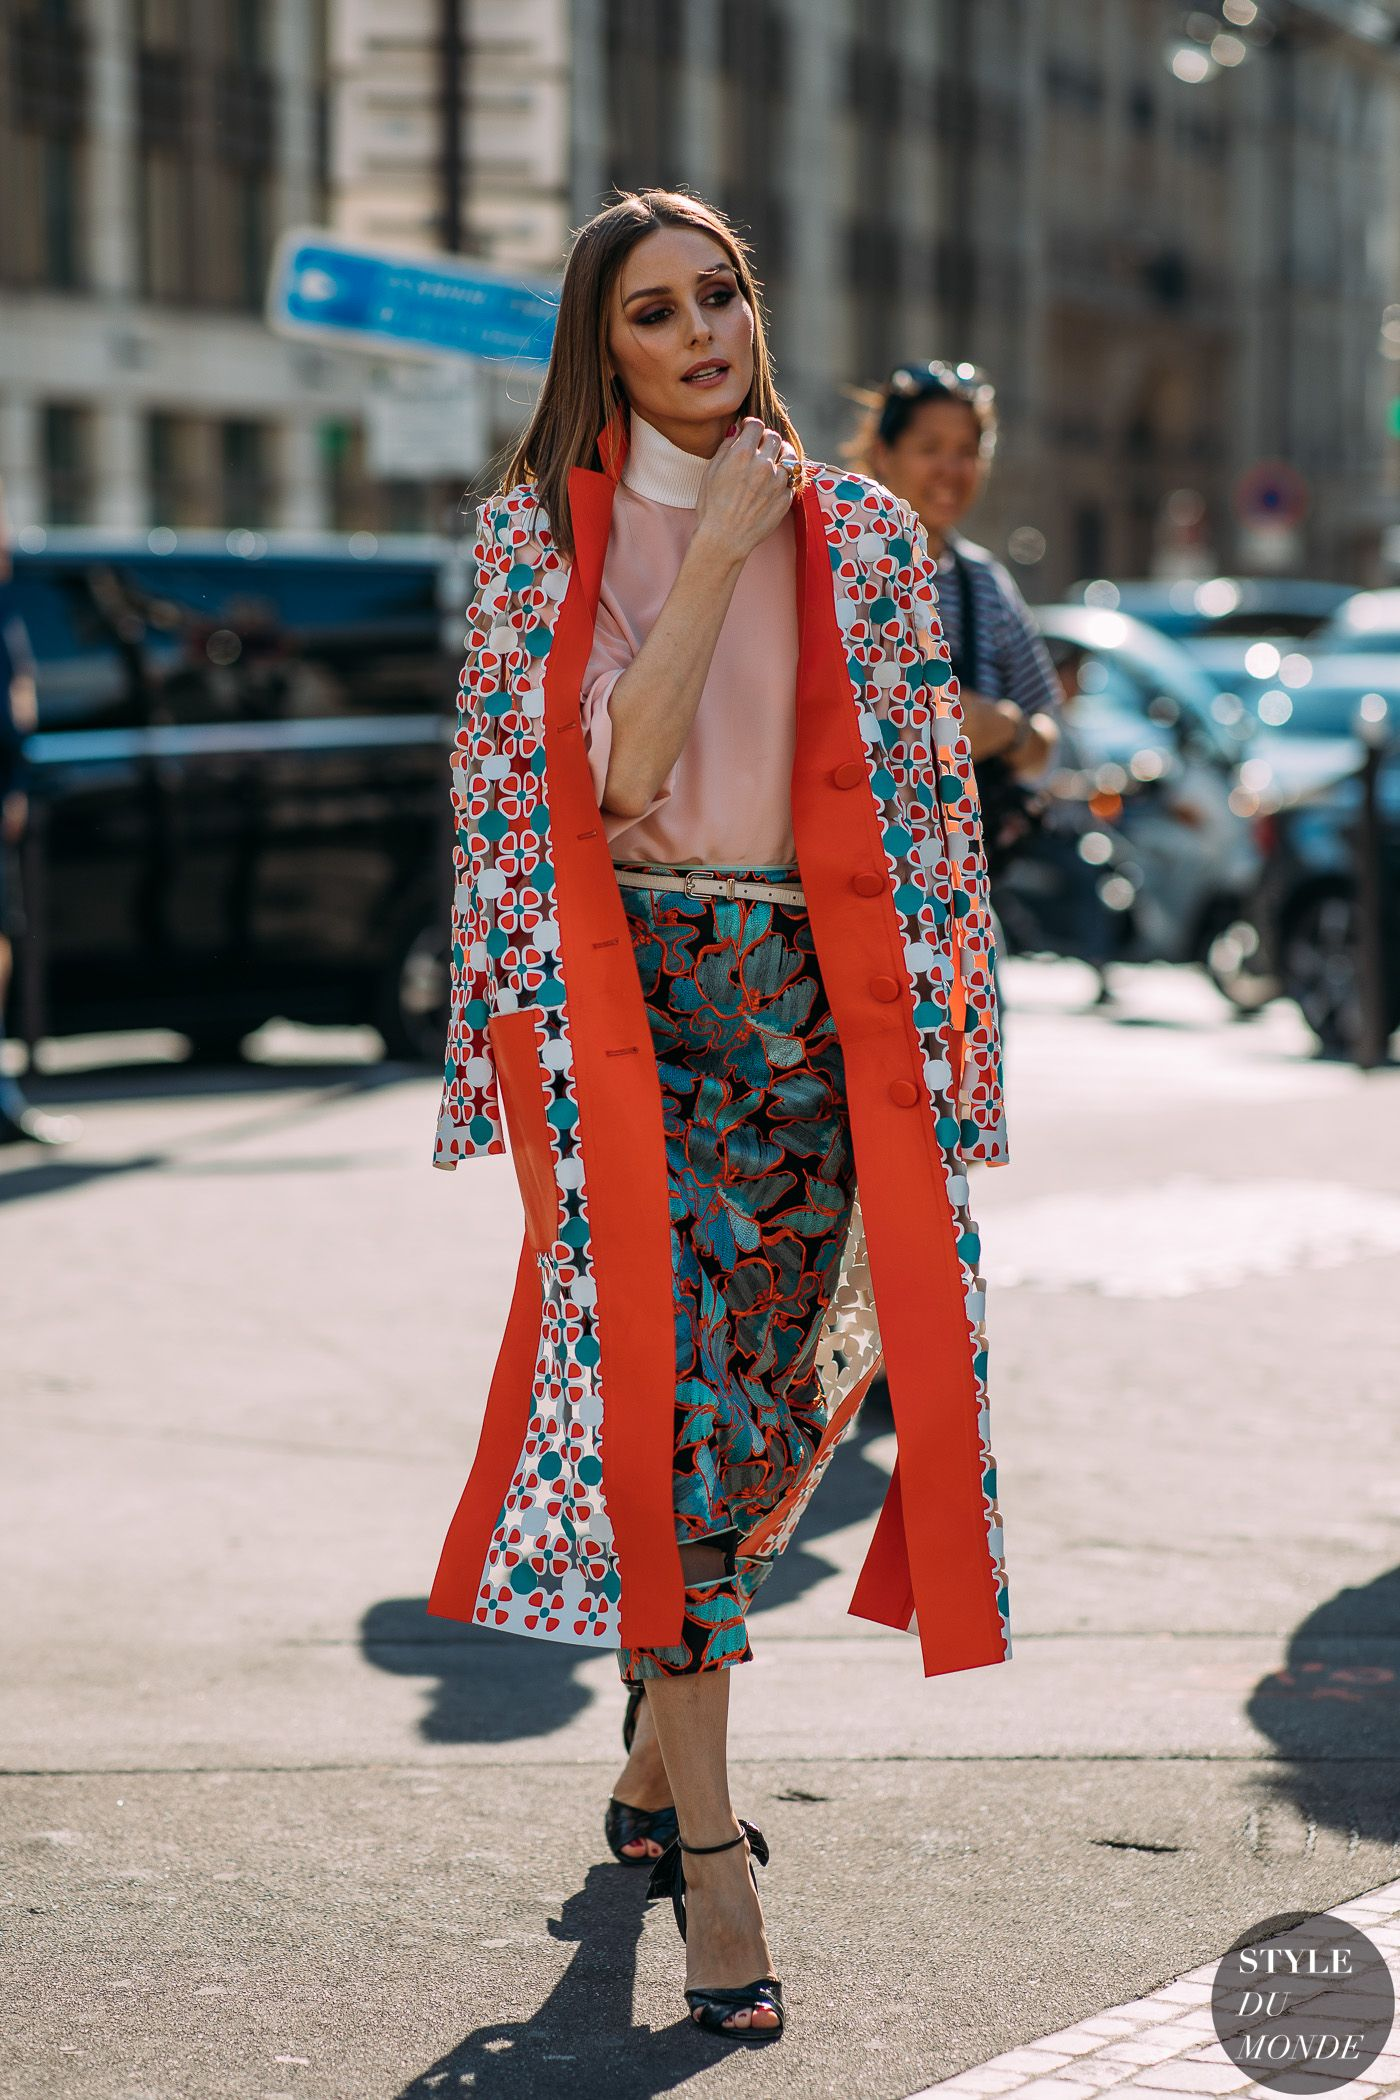 600d2933d41 Olivia Palermo by STYLEDUMONDE Street Style Fashion  Photography20180704 48A2055